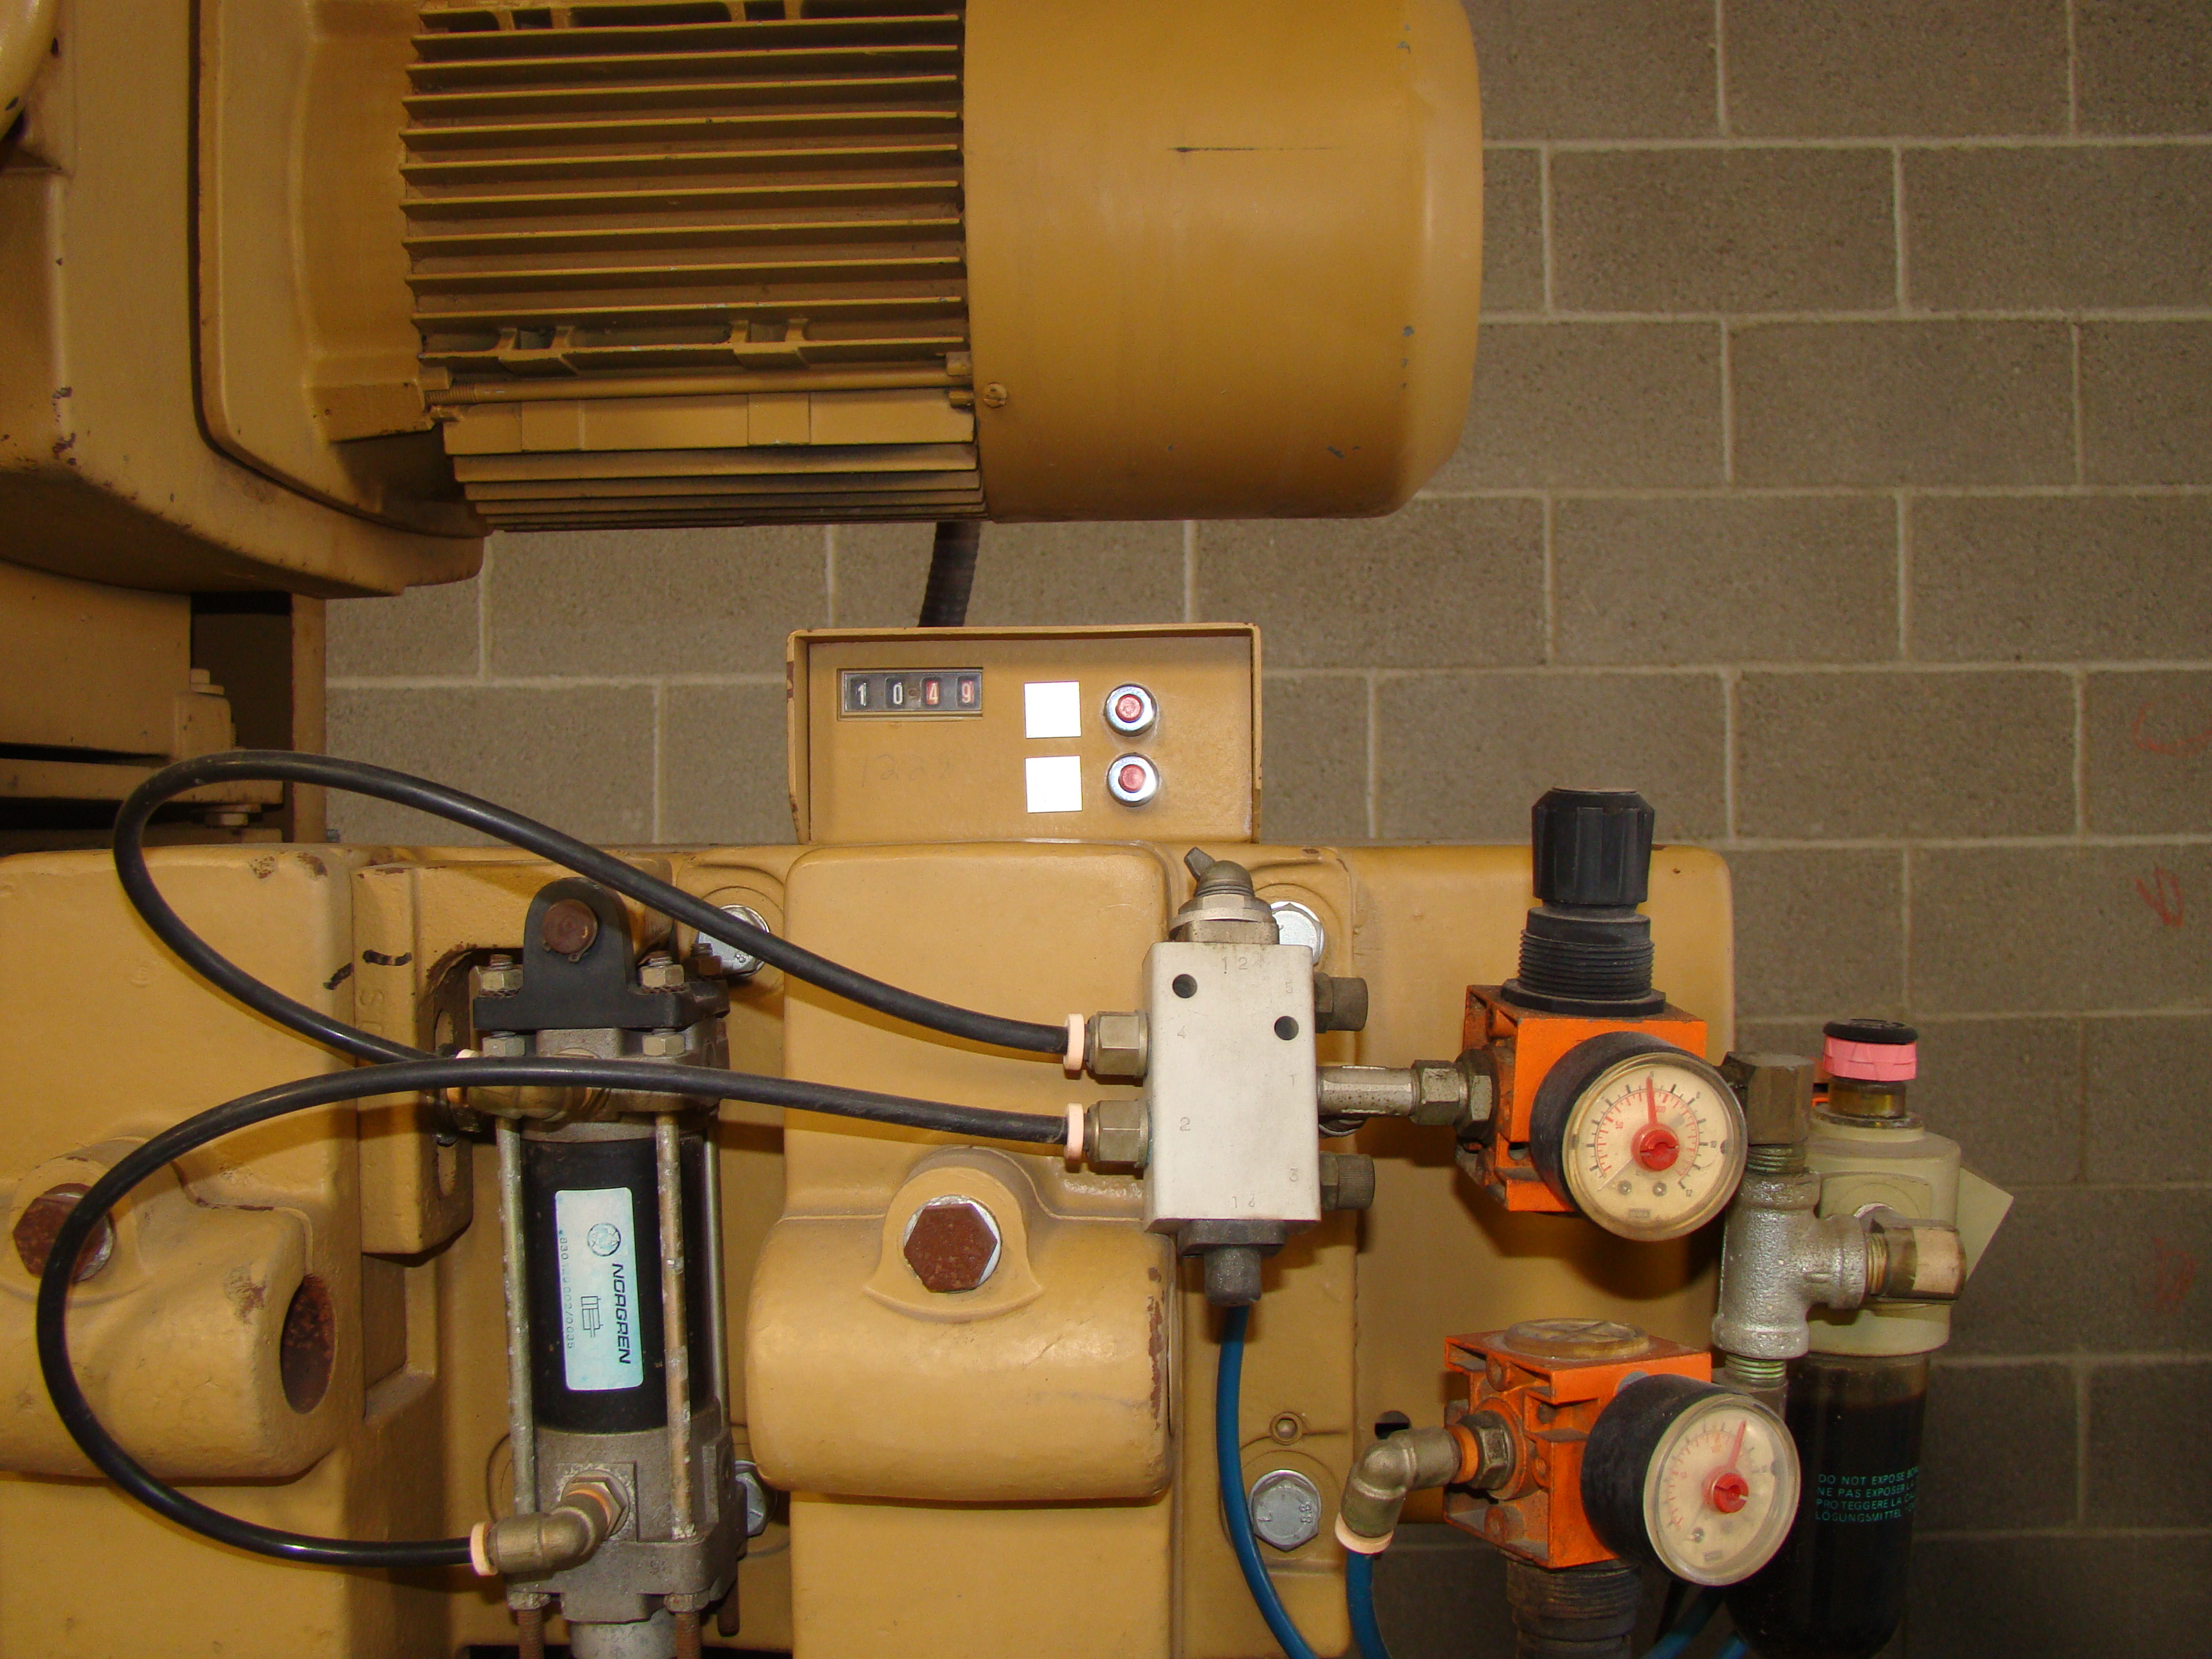 """SCMi 9"""" Wood Moulder, Model: P230 5 Head 6.6HP 220/440 Volts 3Phase - Image 10 of 14"""